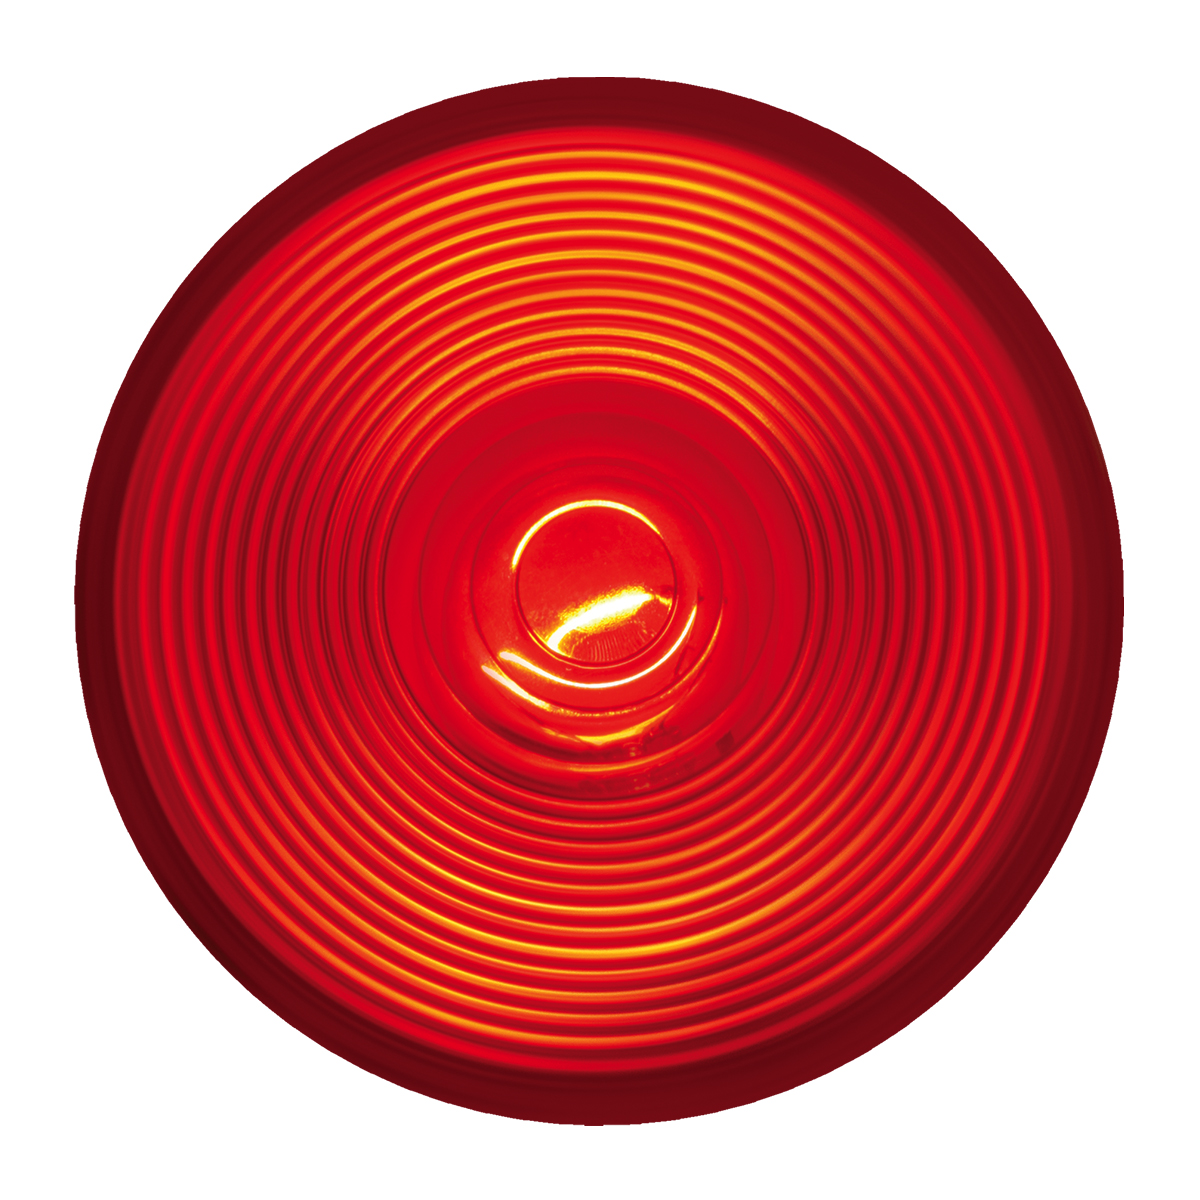 """#80471 - 4"""" Round Incandescent Flat Red/Red Light"""